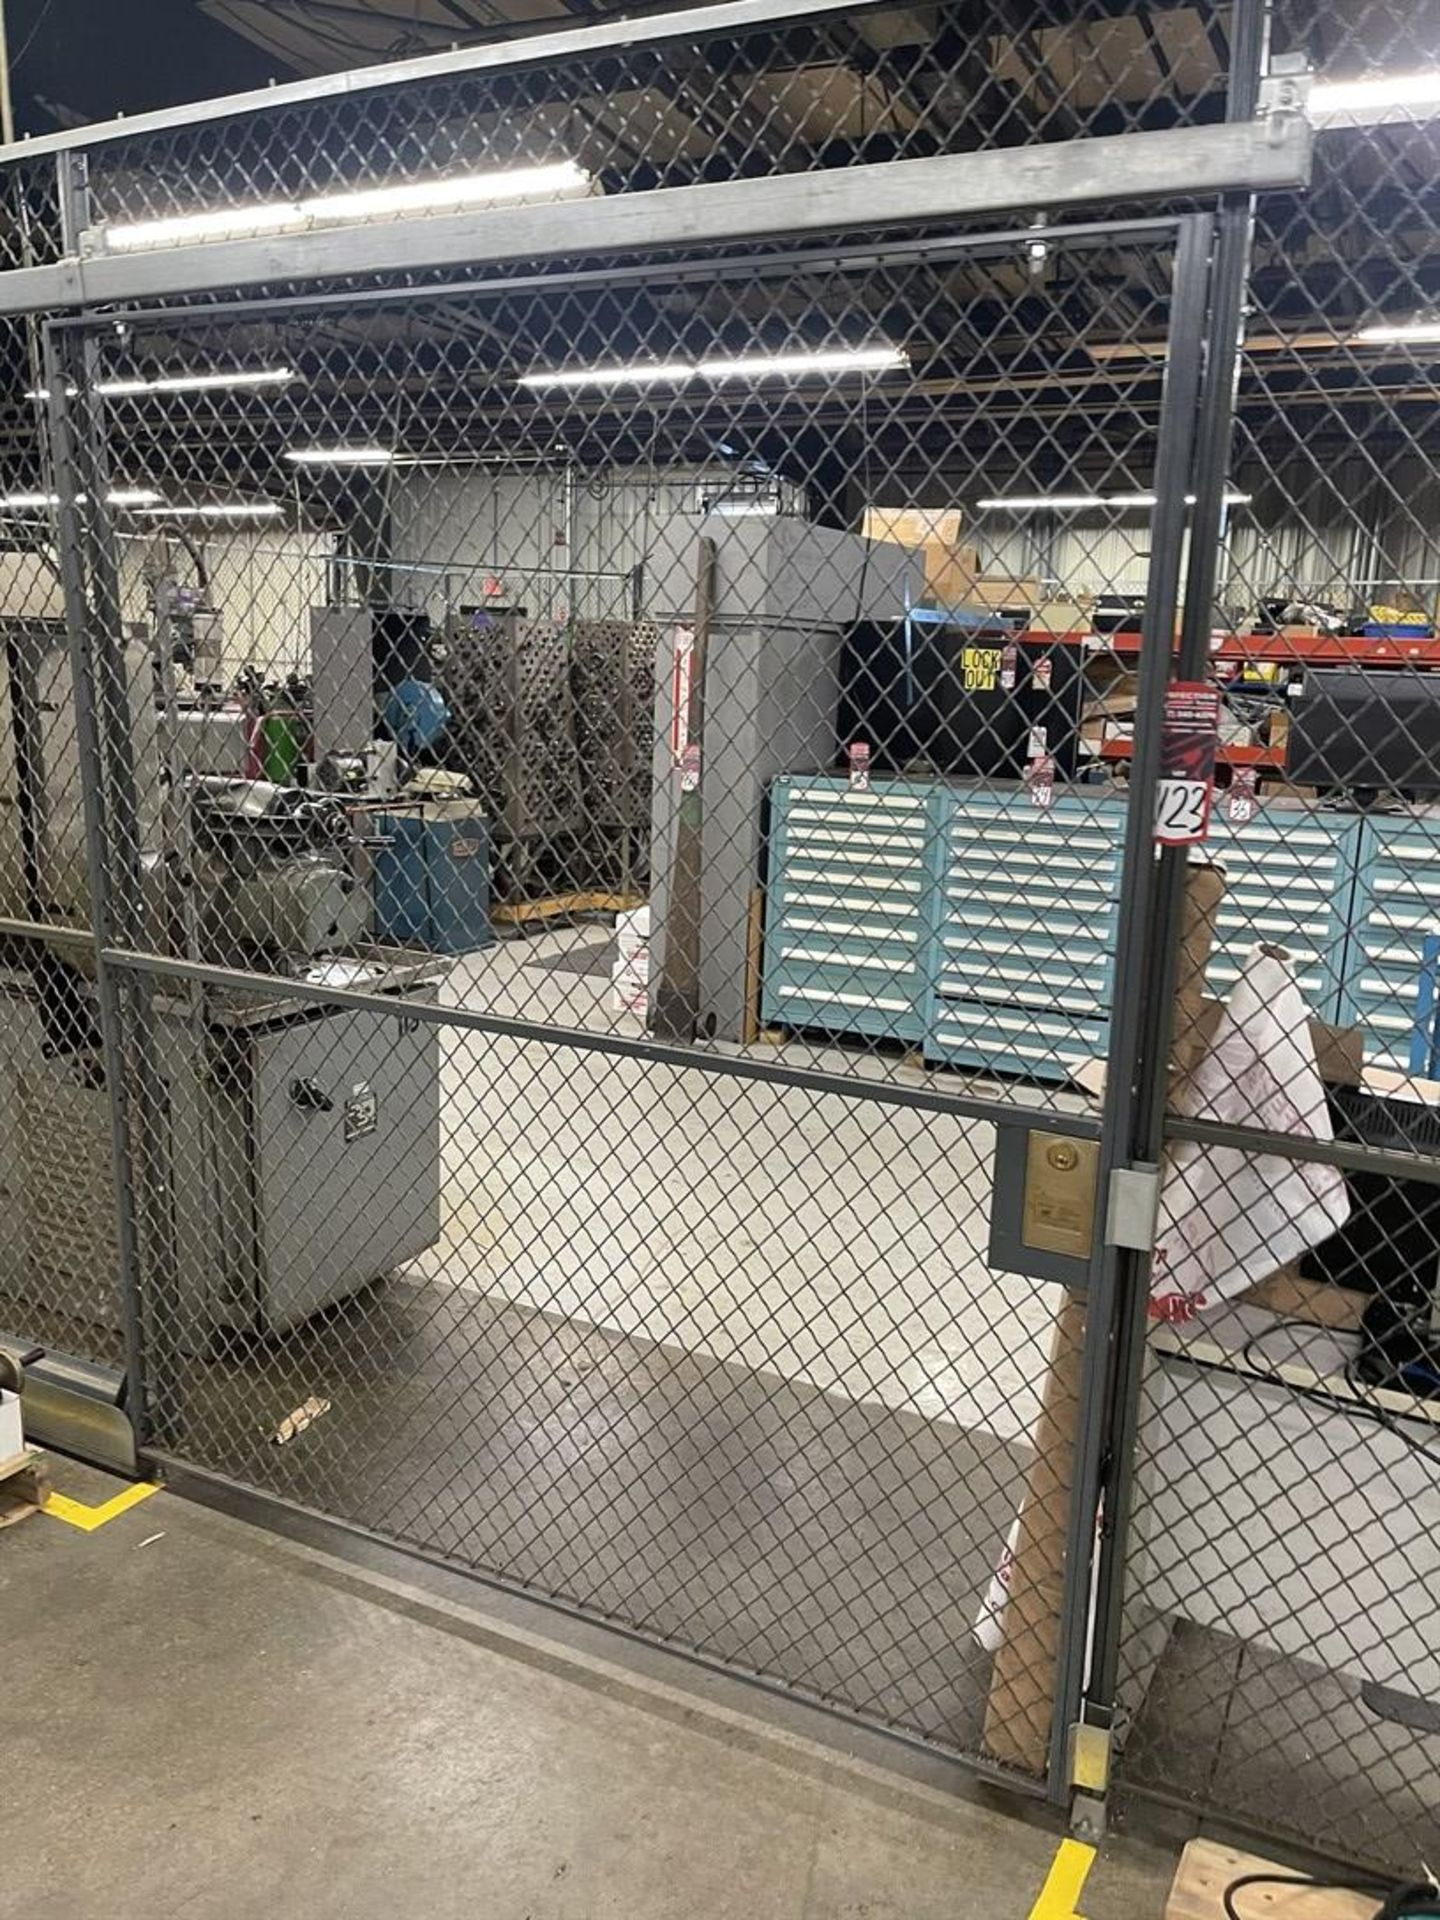 FOLDING GUARD WOV-N-WIRE Crib Fencing, Approx. 125' Total Length Sliding Door and Hinge Door - Image 2 of 4